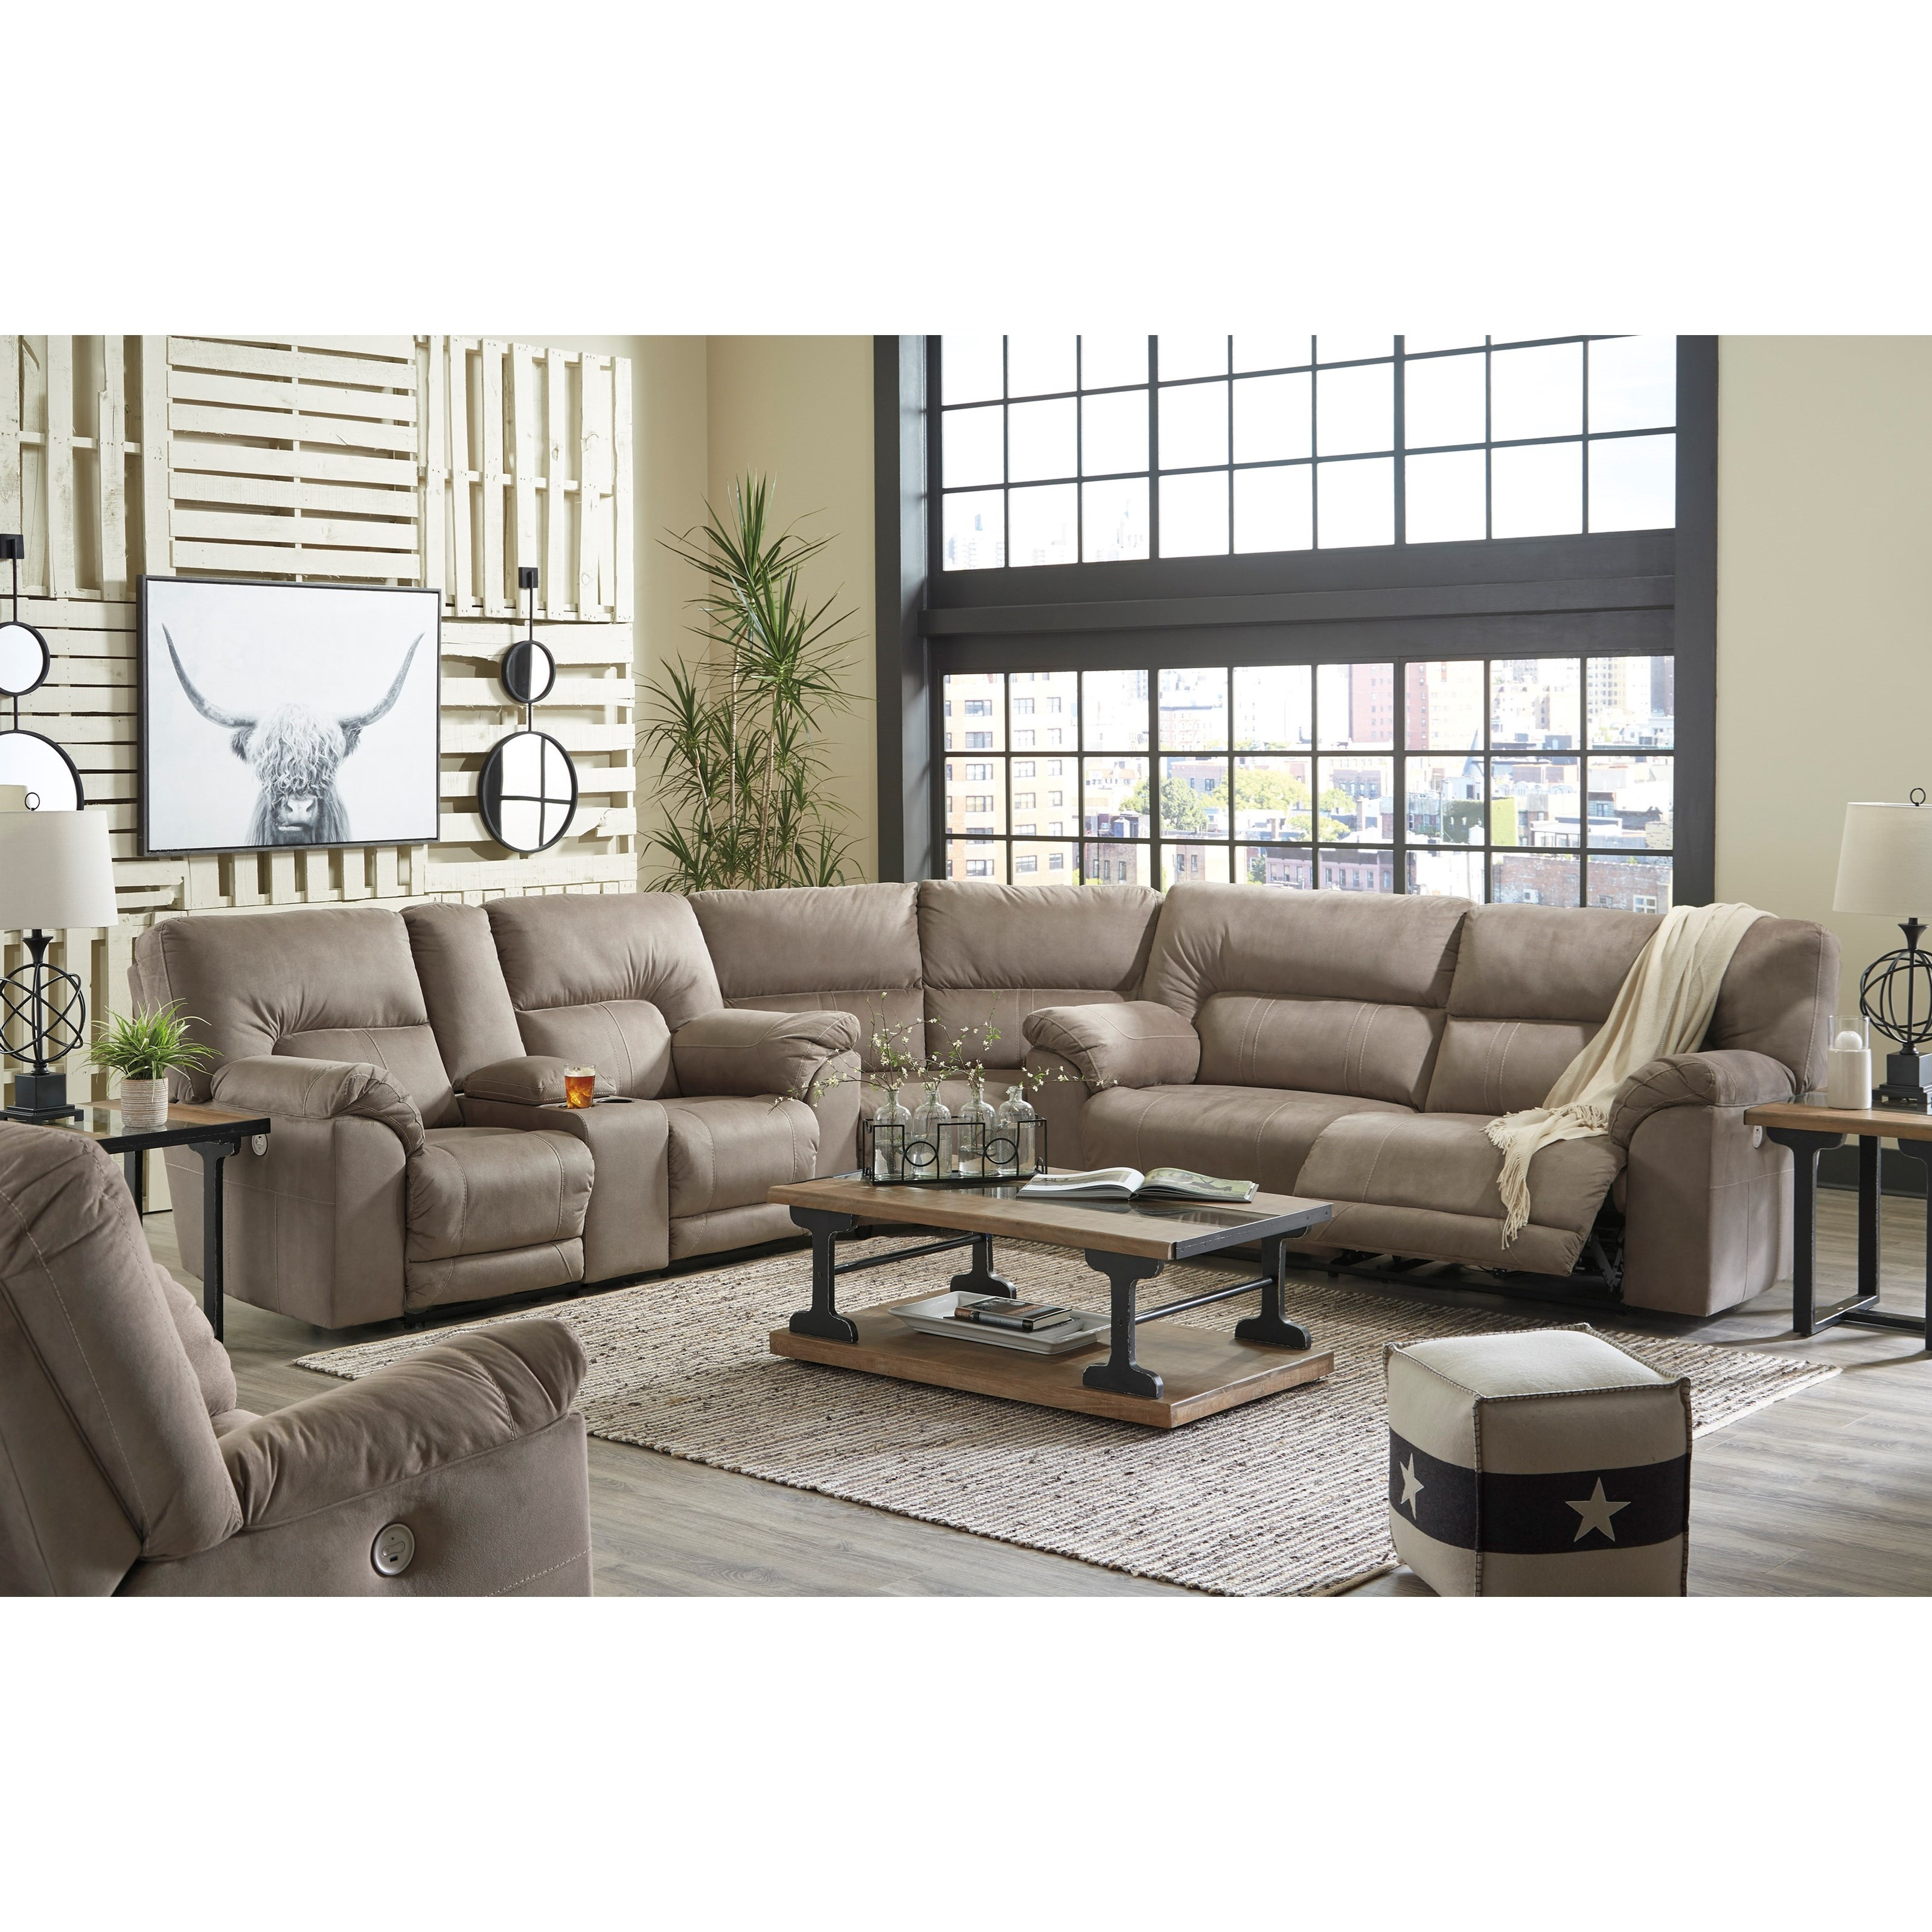 Cavalcade Reclining Living Room Group by Benchcraft at Standard Furniture